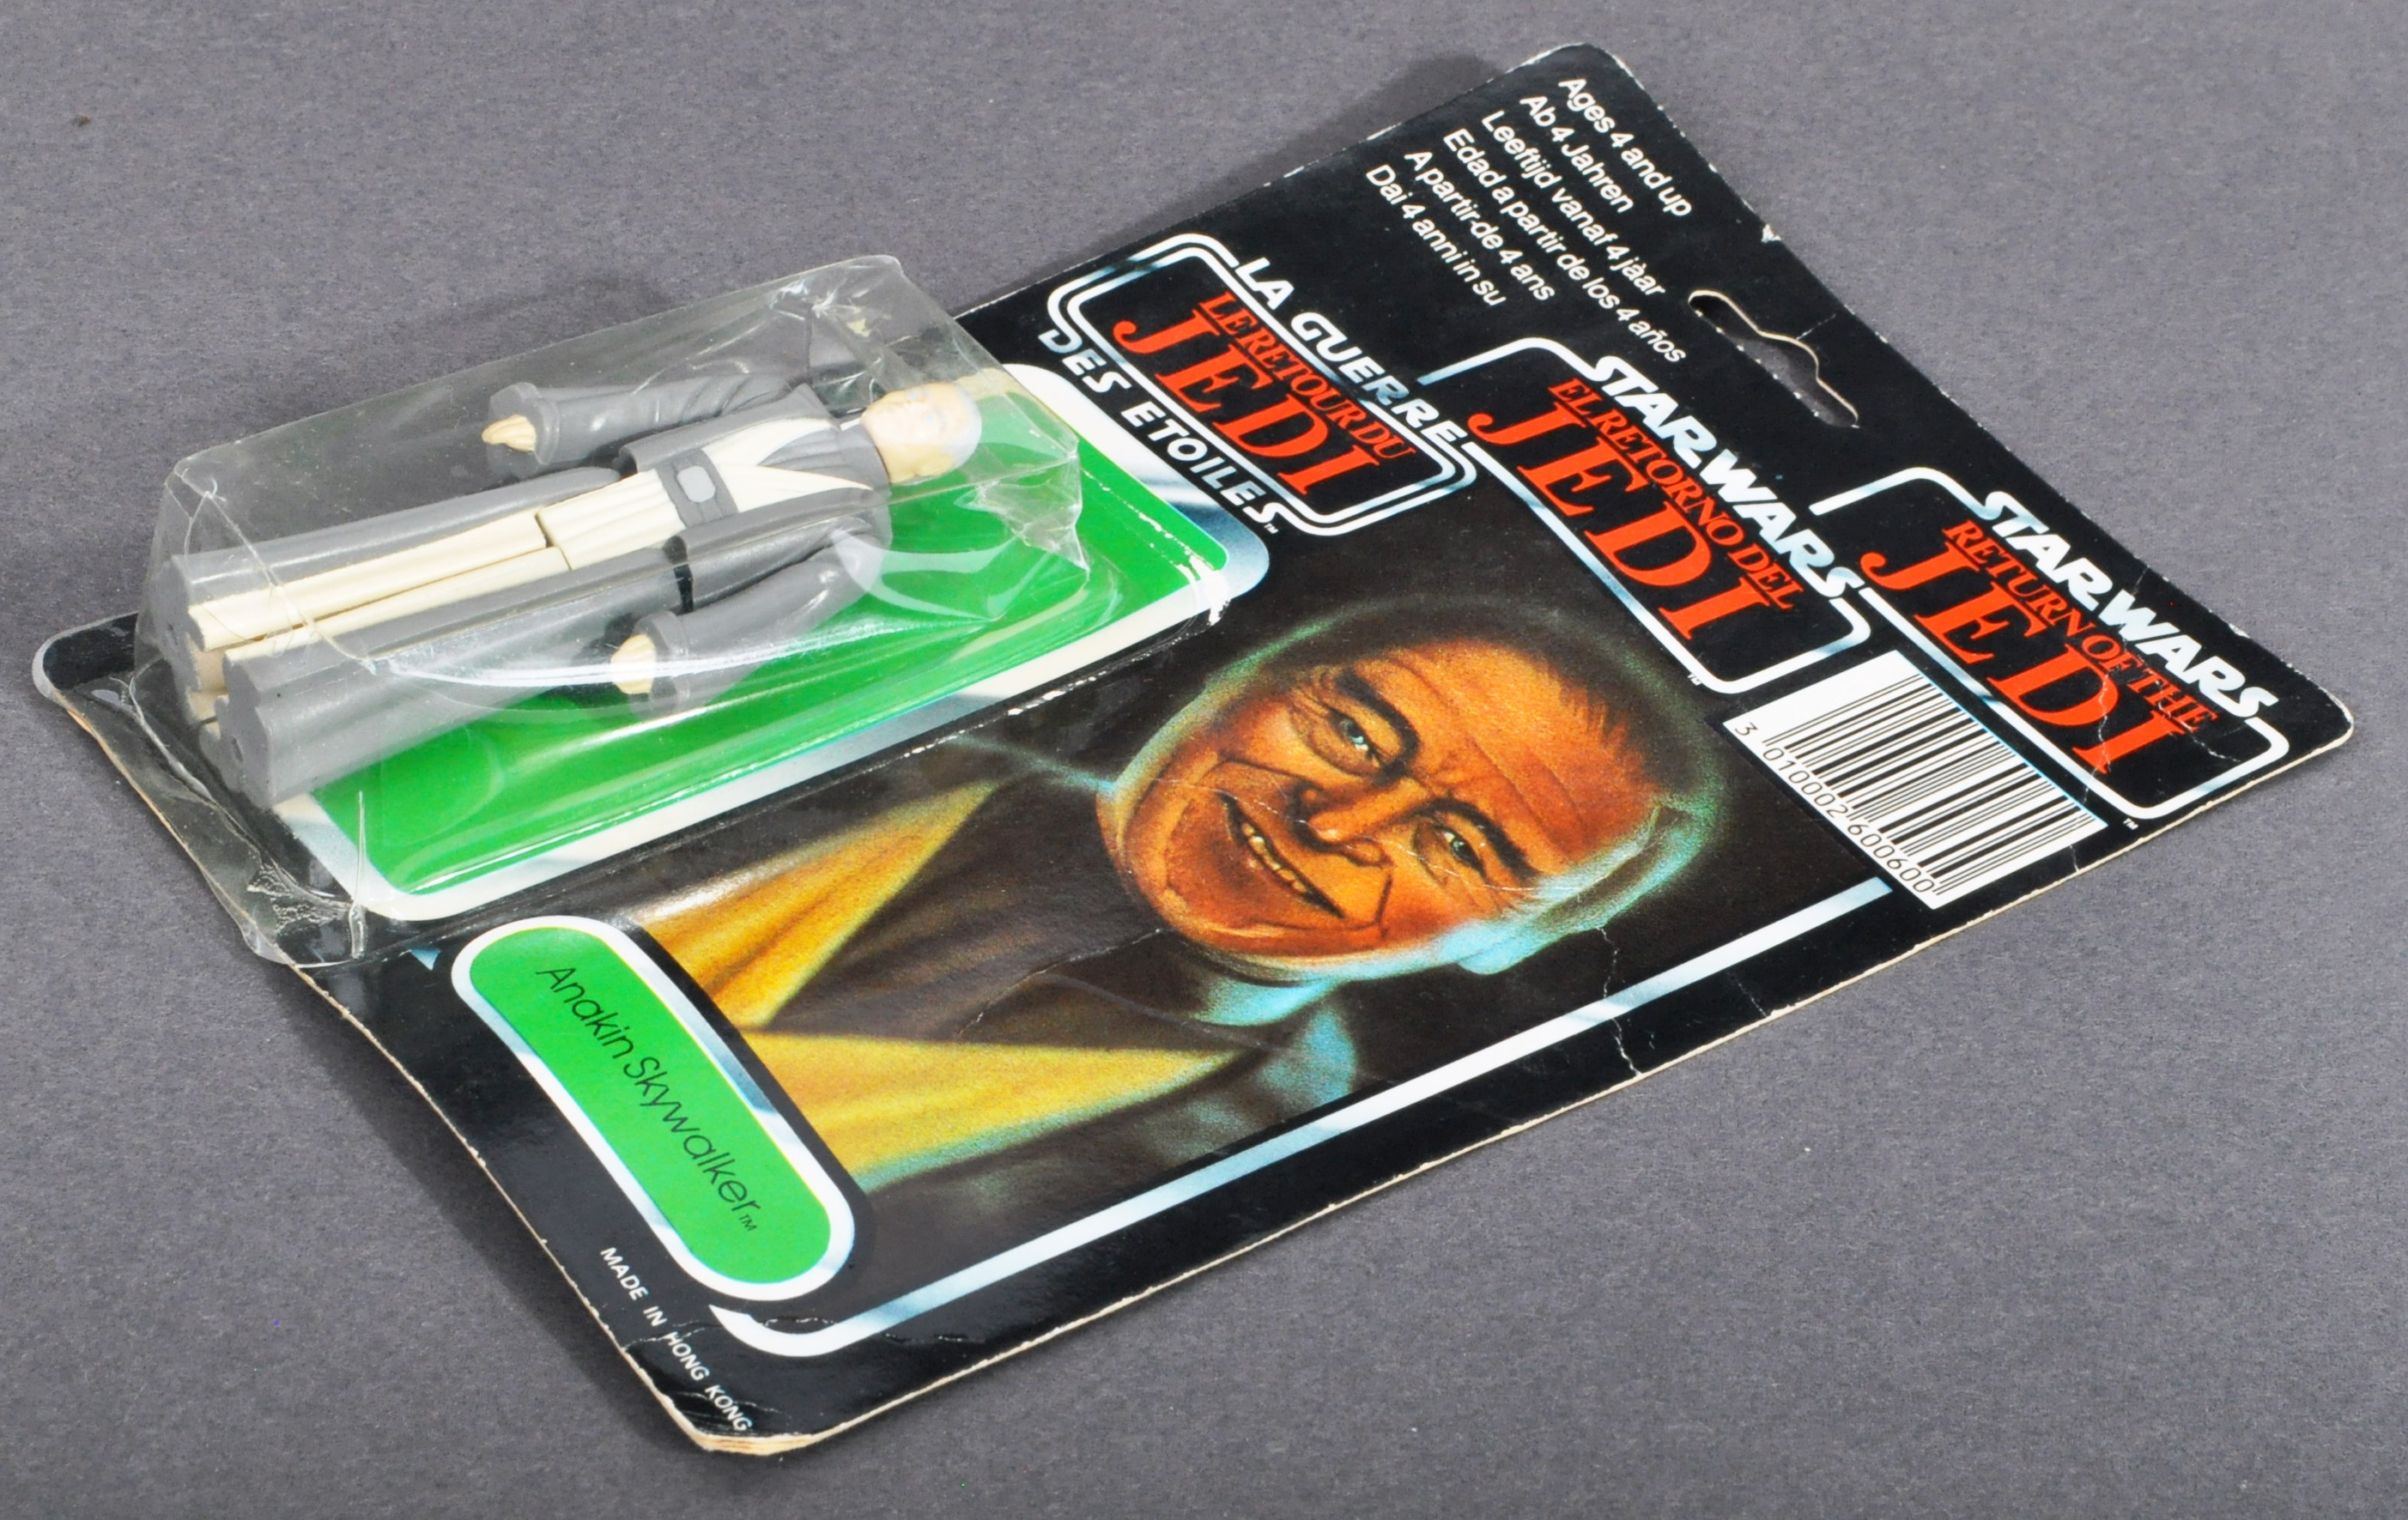 STAR WARS - ORIGINAL PALITOY CARDED MOC ACTION FIGURE - Image 3 of 6